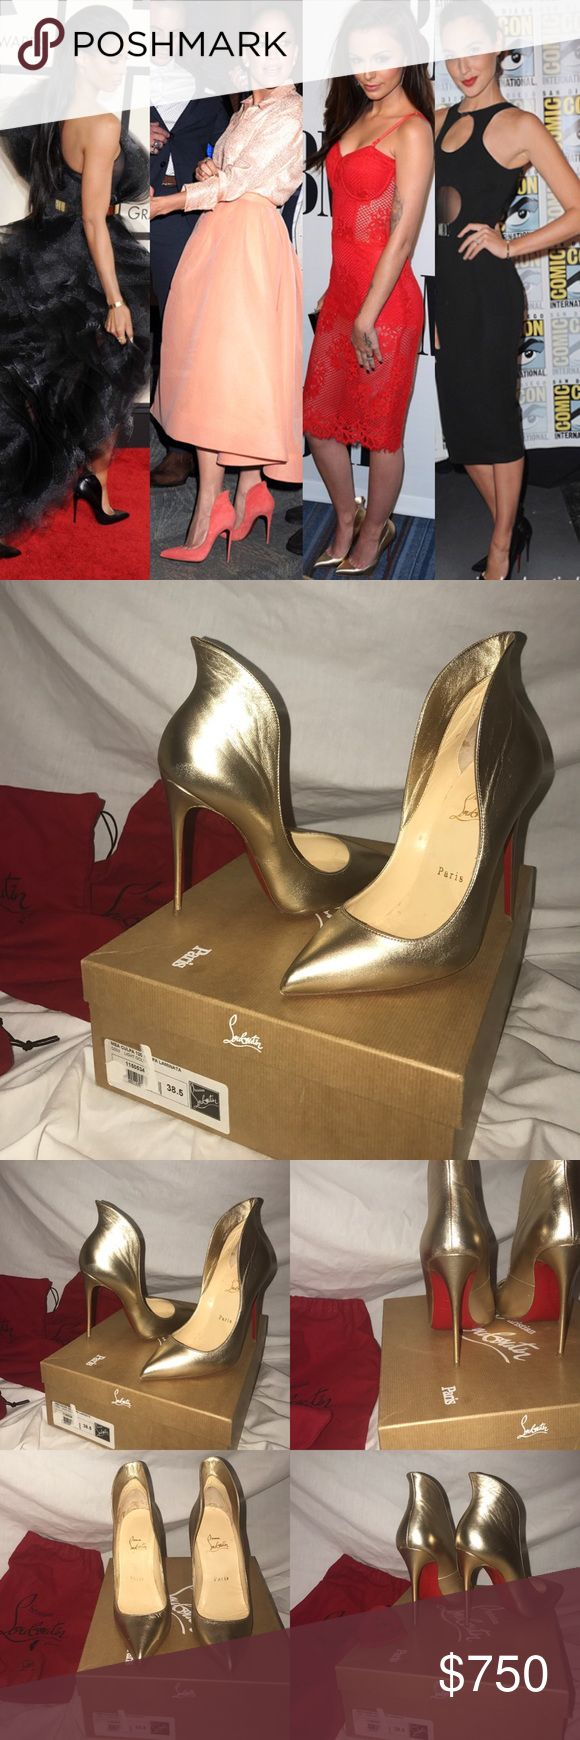 "Christian Louboutin Mea Culpa 120 Gold Pump EU38.5 Christian Louboutin Mea Culpa Laminata 120 mm Gold leather flare pump.  Excellent condition worn once gently. Soles are in great condition ALL OF RED STILL ON SOLES. ***Minor imperfections to leather (not very noticeable due to the metallic look of shoe;view last pic)  •Lovely unique pump. Overall condition: 9/10 •Size: EU 38.5/ US 8. metallic leather pump. 4.7"" covered stiletto heel-120 MM. Pointed with low-dipped vamp. High-cut flared…"